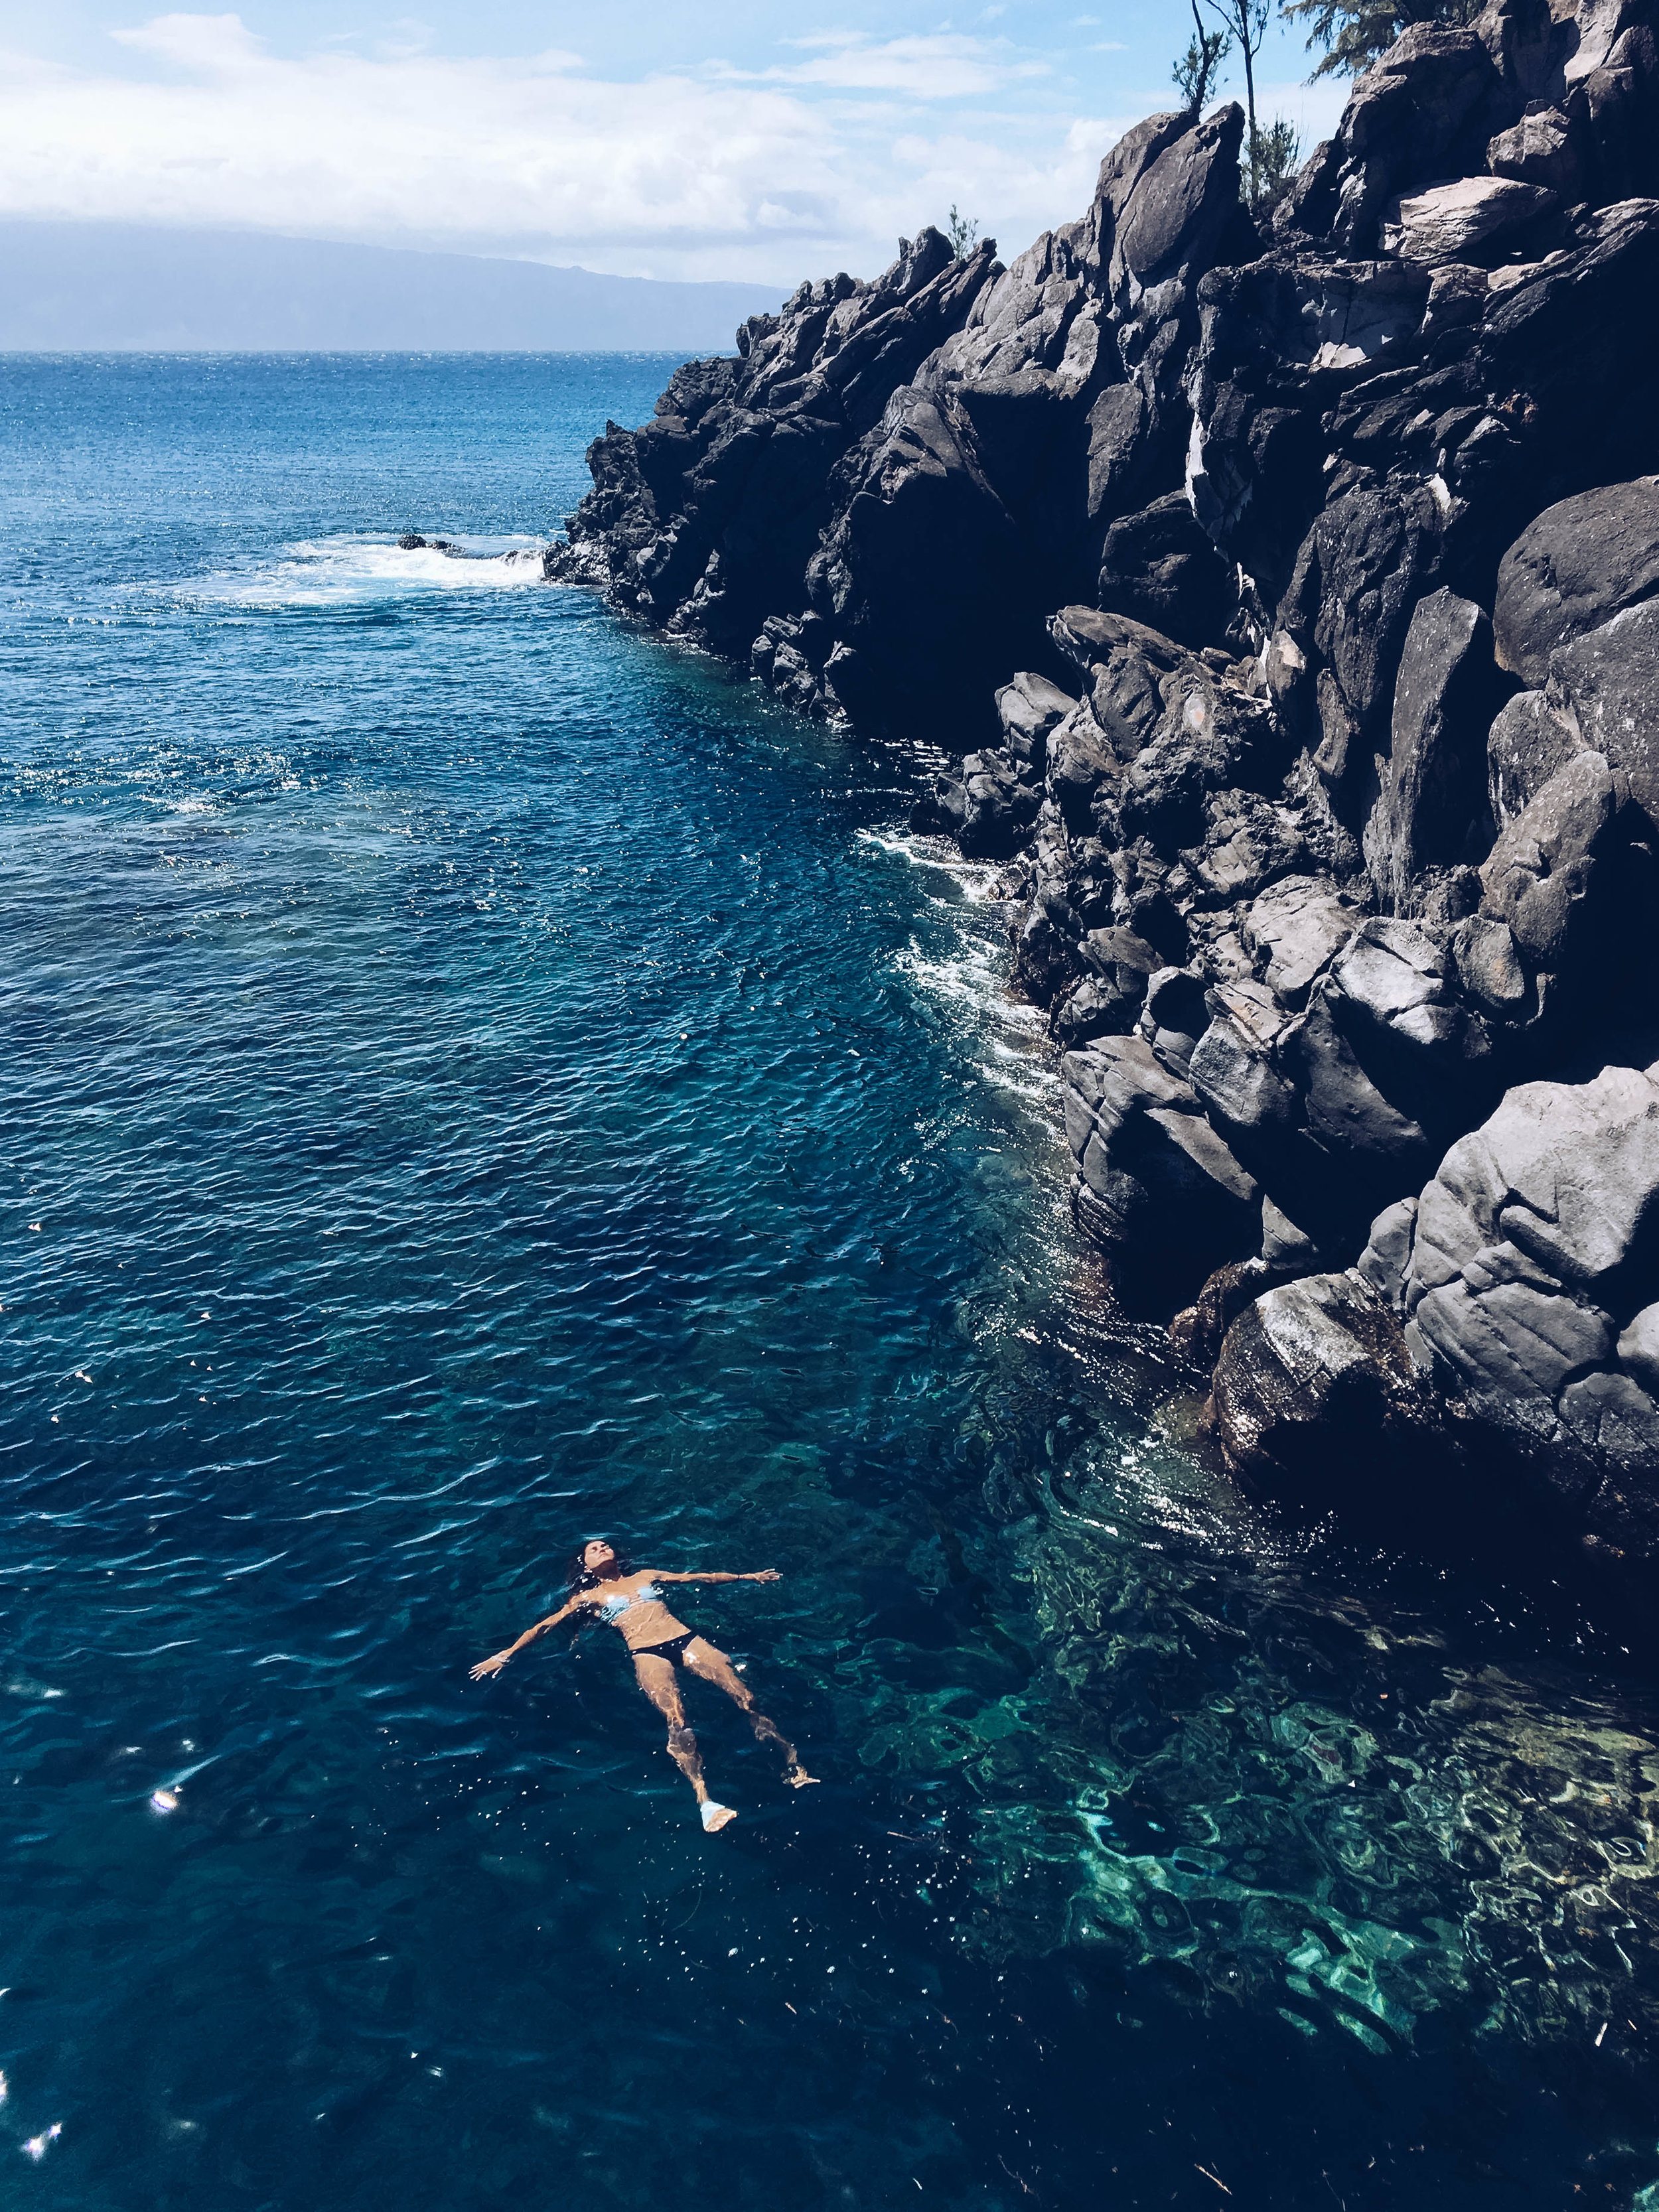 Jumping the rock at Cliff House. The water was like glitter, and so clear and blue!